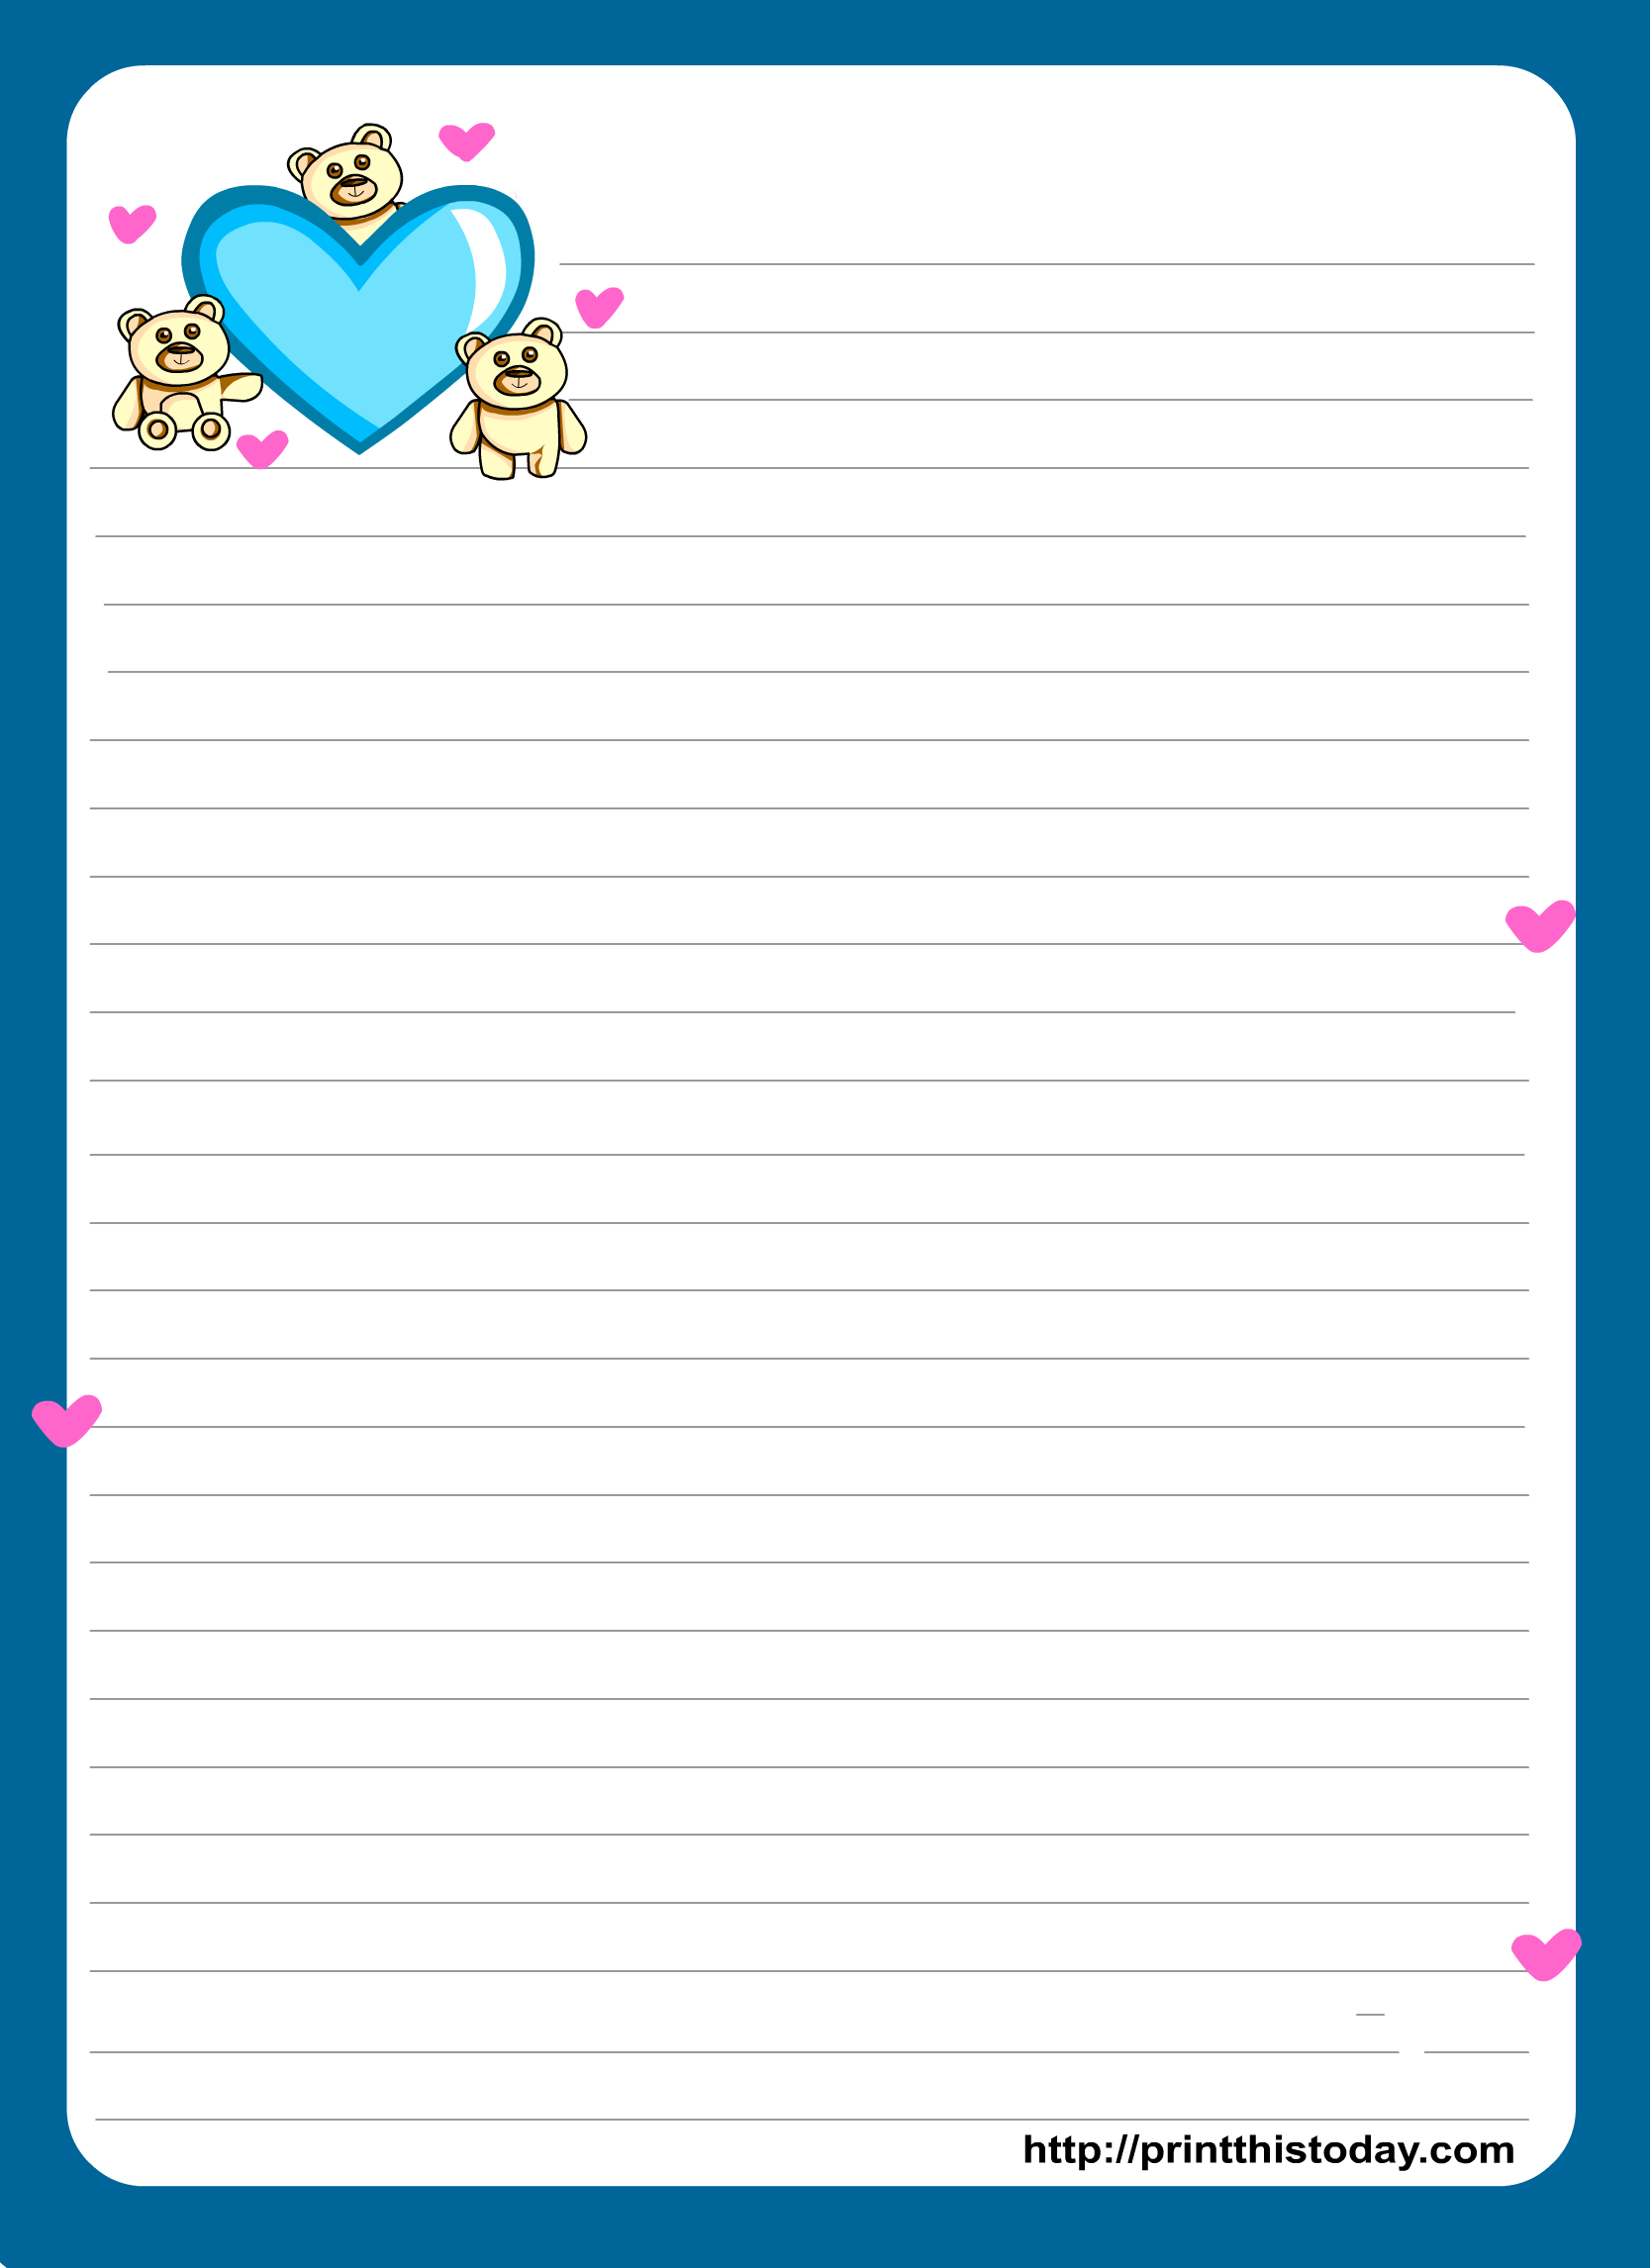 Miss You Love Letter Pad Stationery | Lined Stationery | Free - Free Printable Lined Stationery